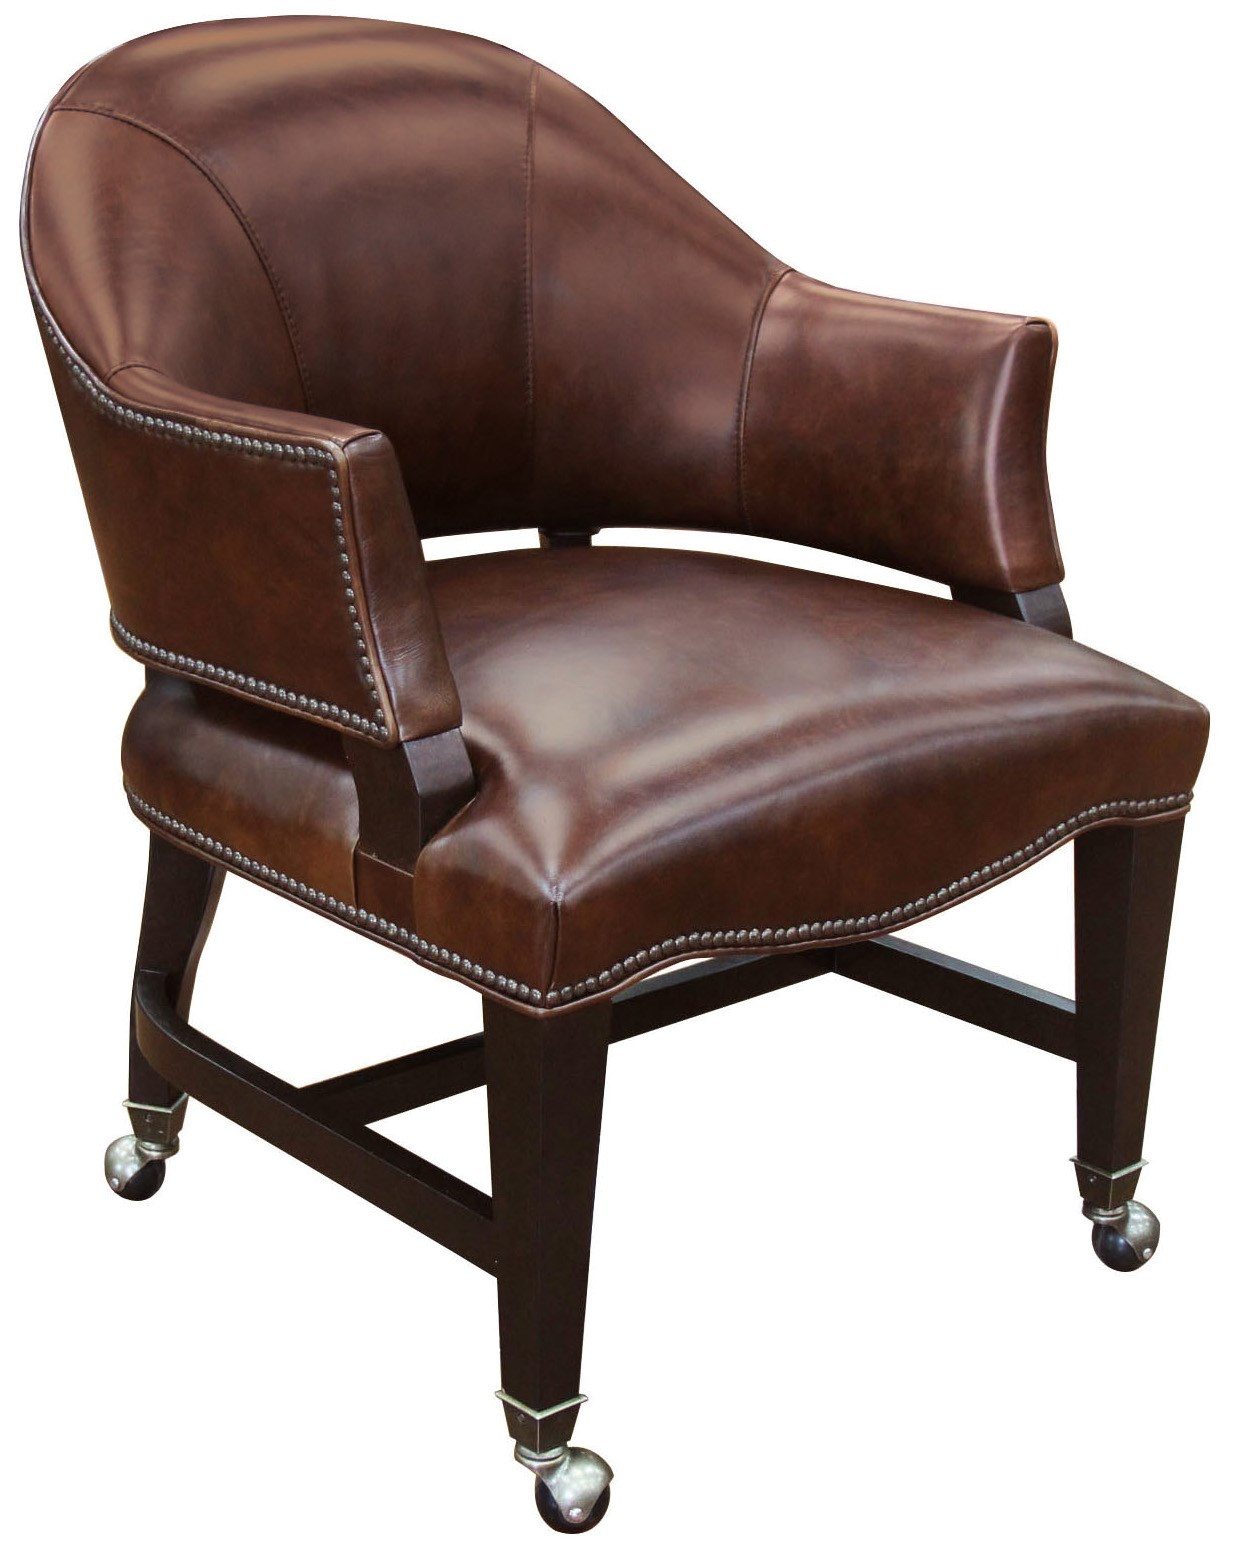 Game Chairs Leather Game Chair With Swivel Casters By Hooker Furniture